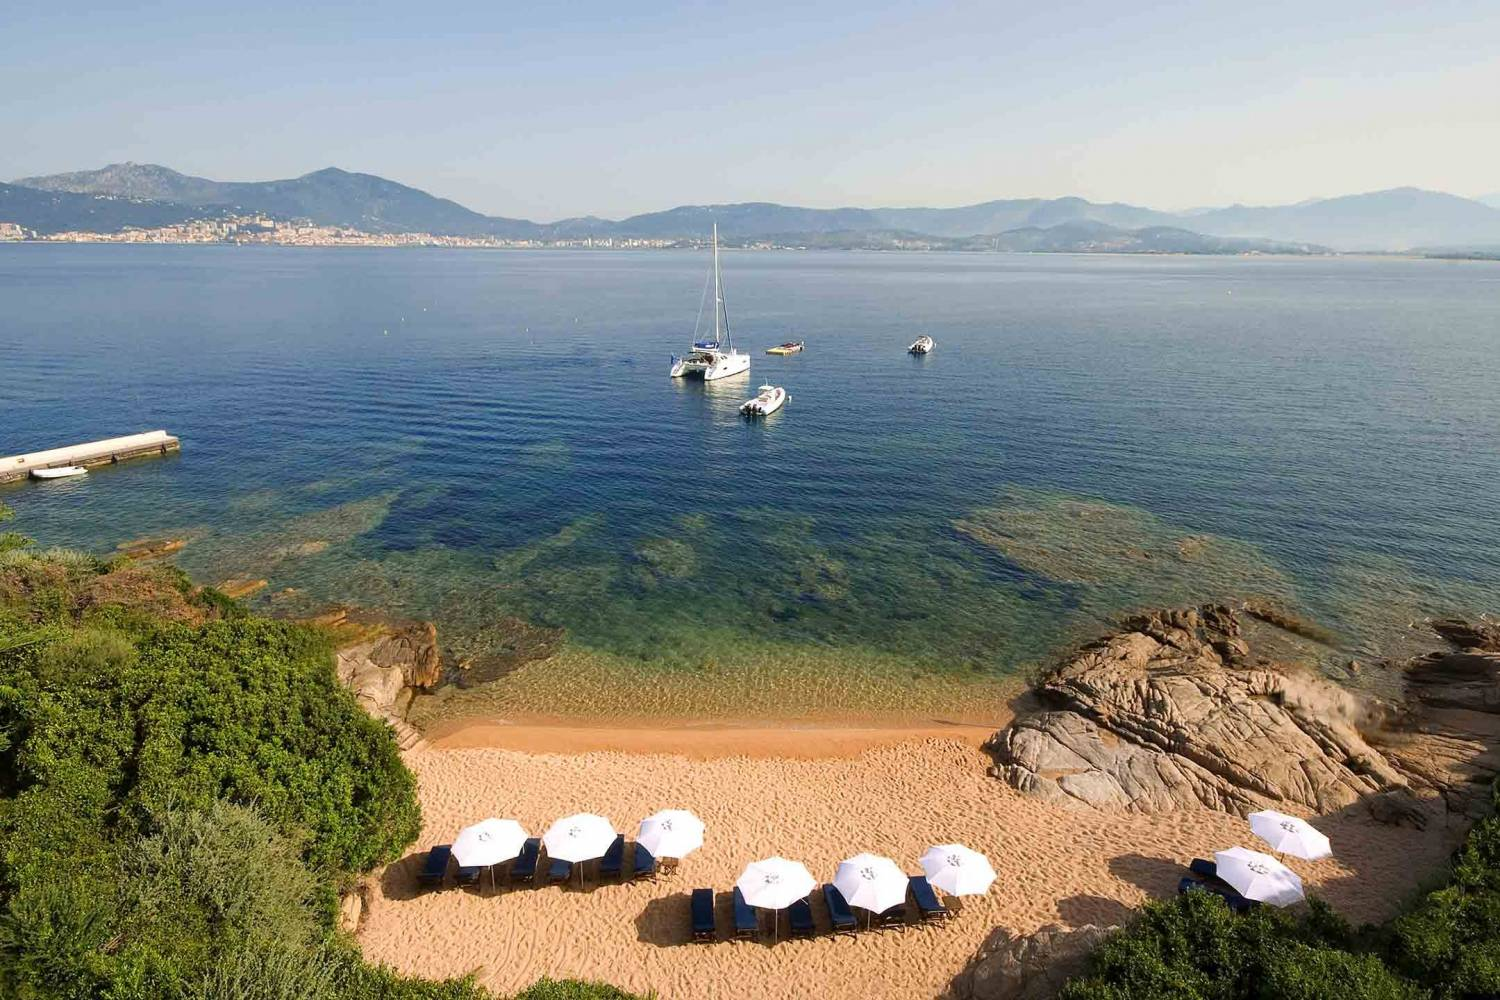 Enjoy a private chef after an amazing day in Ajaccio - Take a Chef